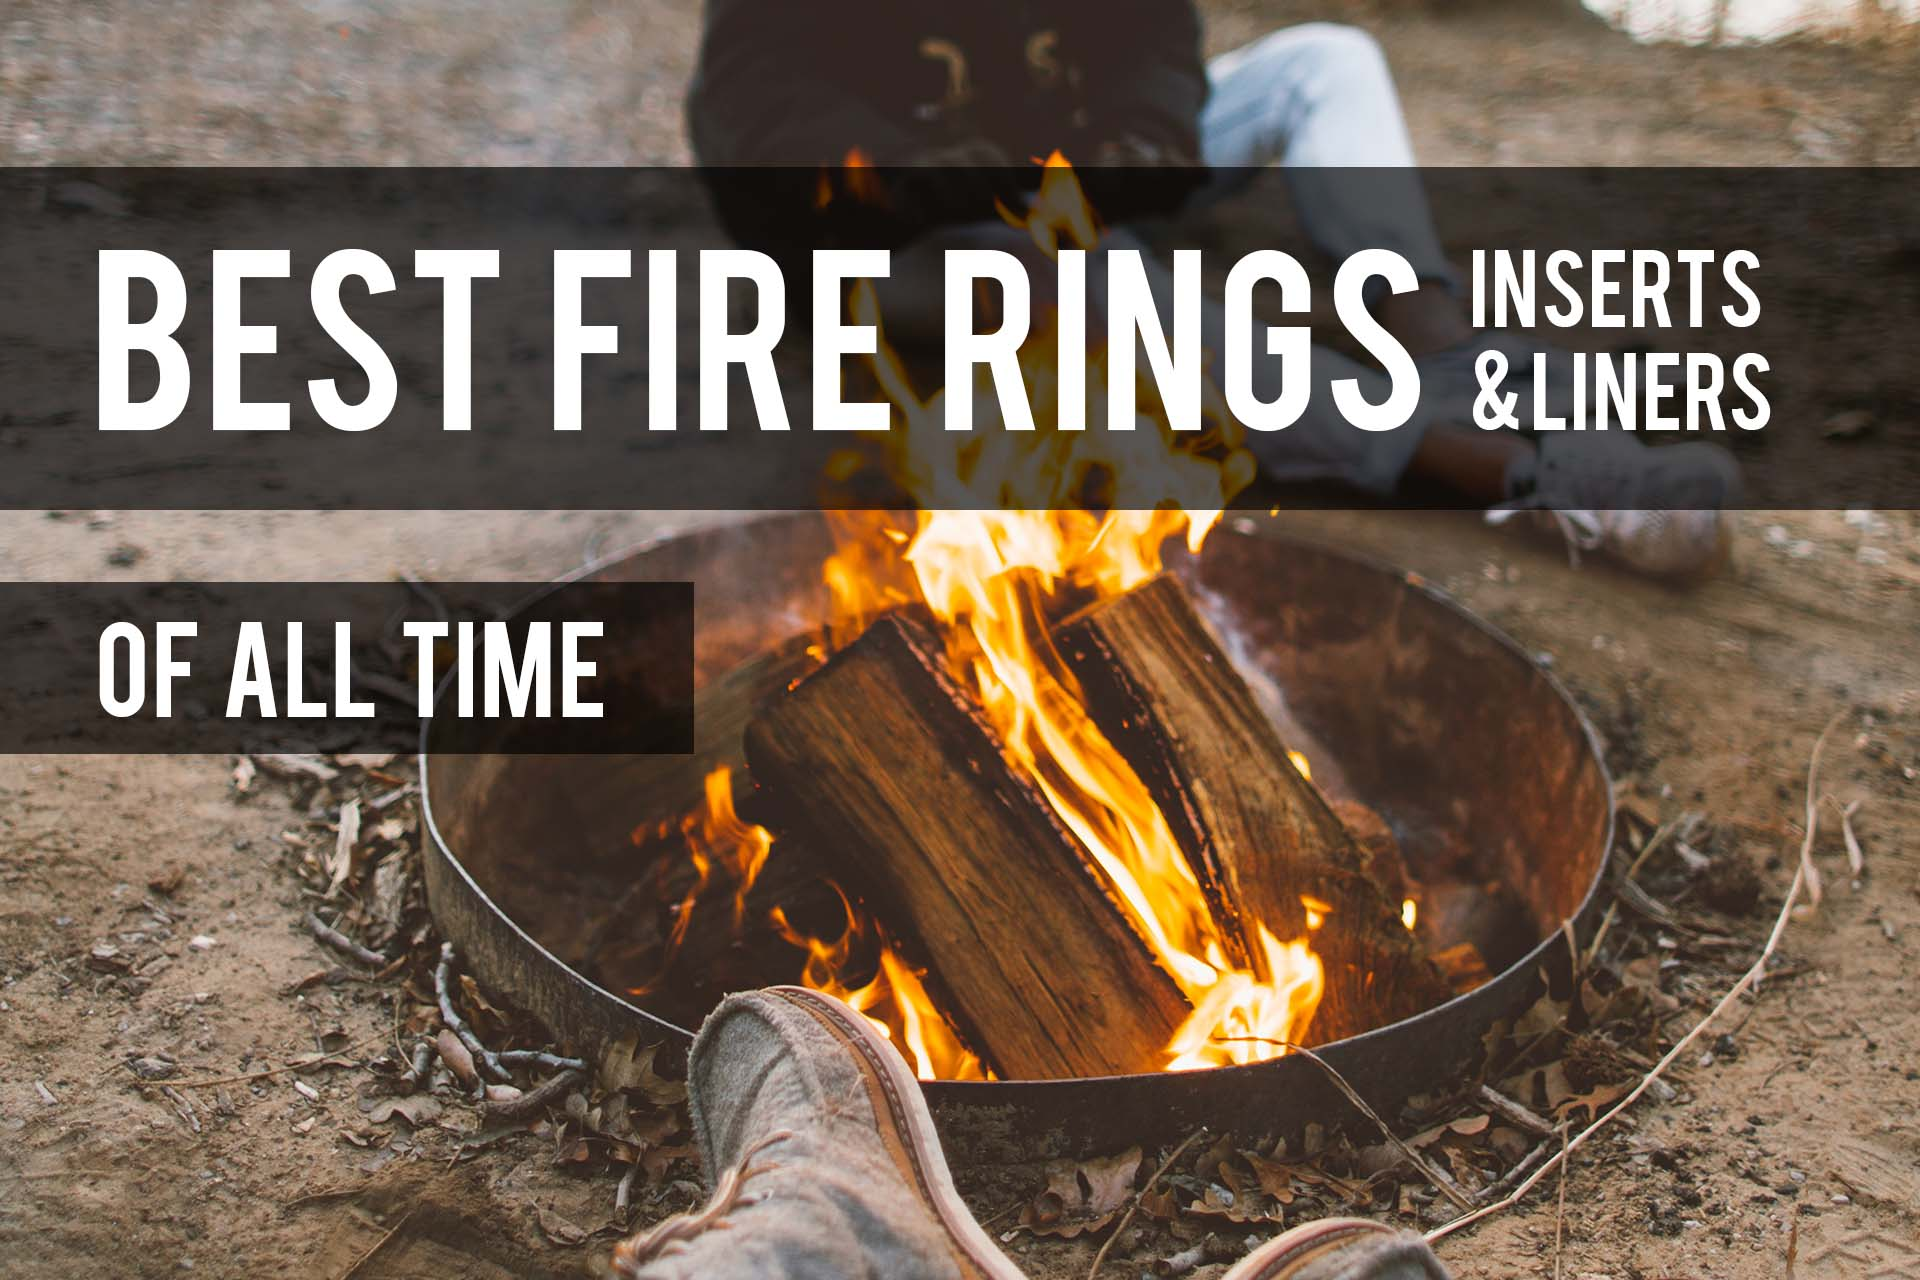 Best Fire Rings 2020 Reviews Liners Inserts The Patio Pro